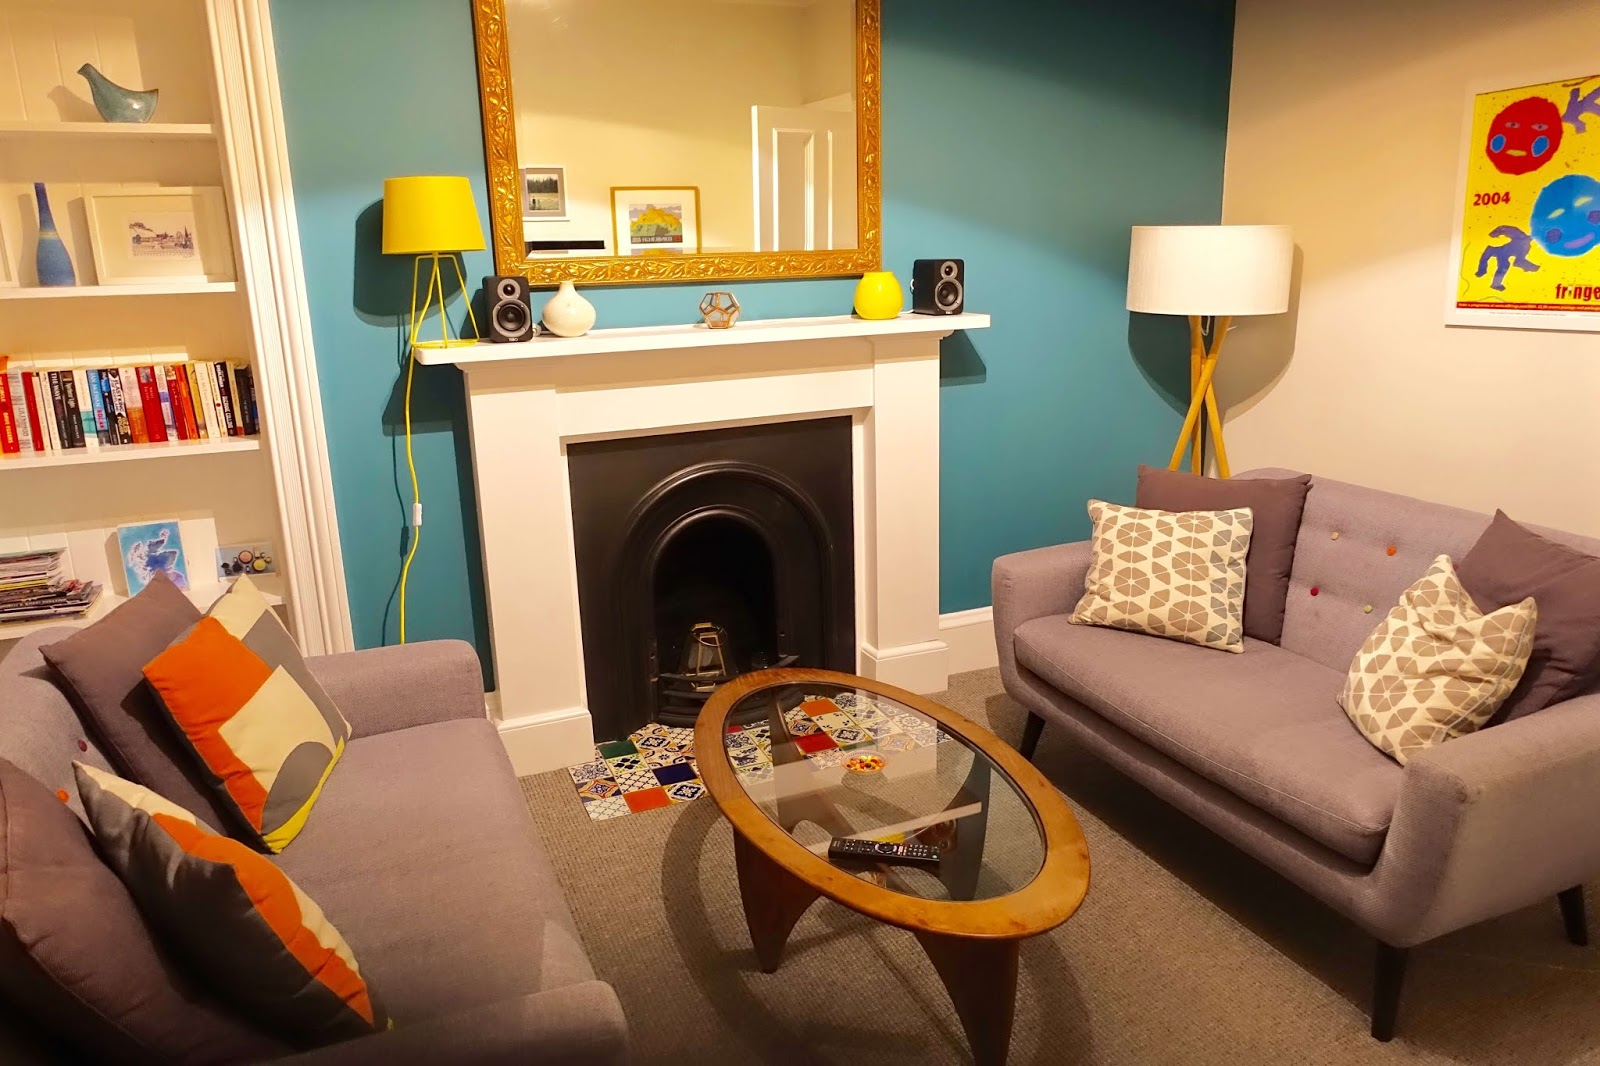 airbnb apartment edinburgh